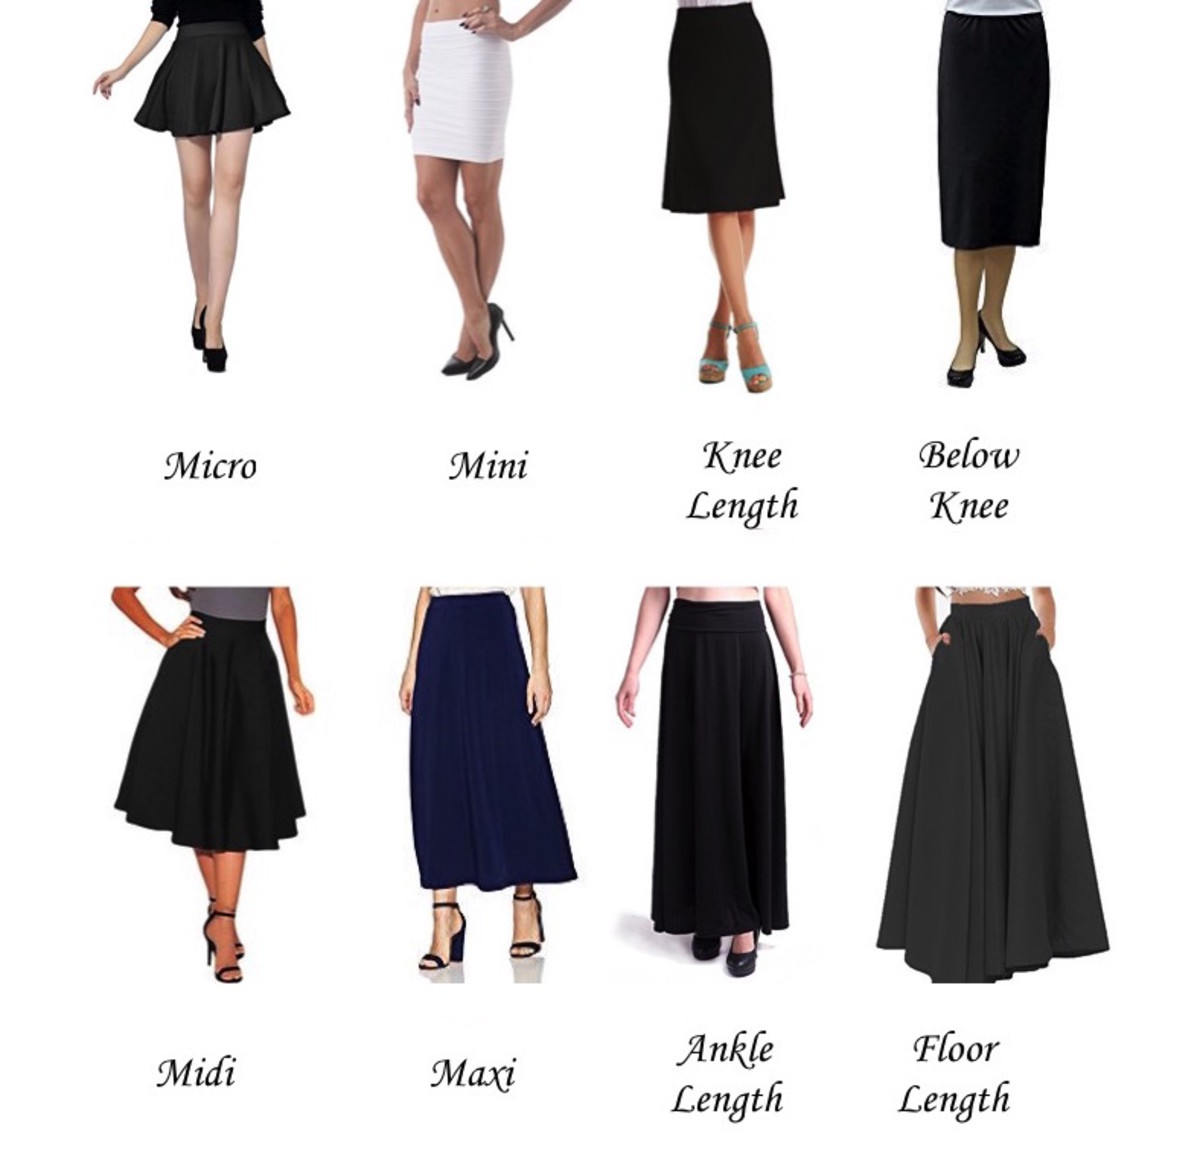 Different Skirt Lengths